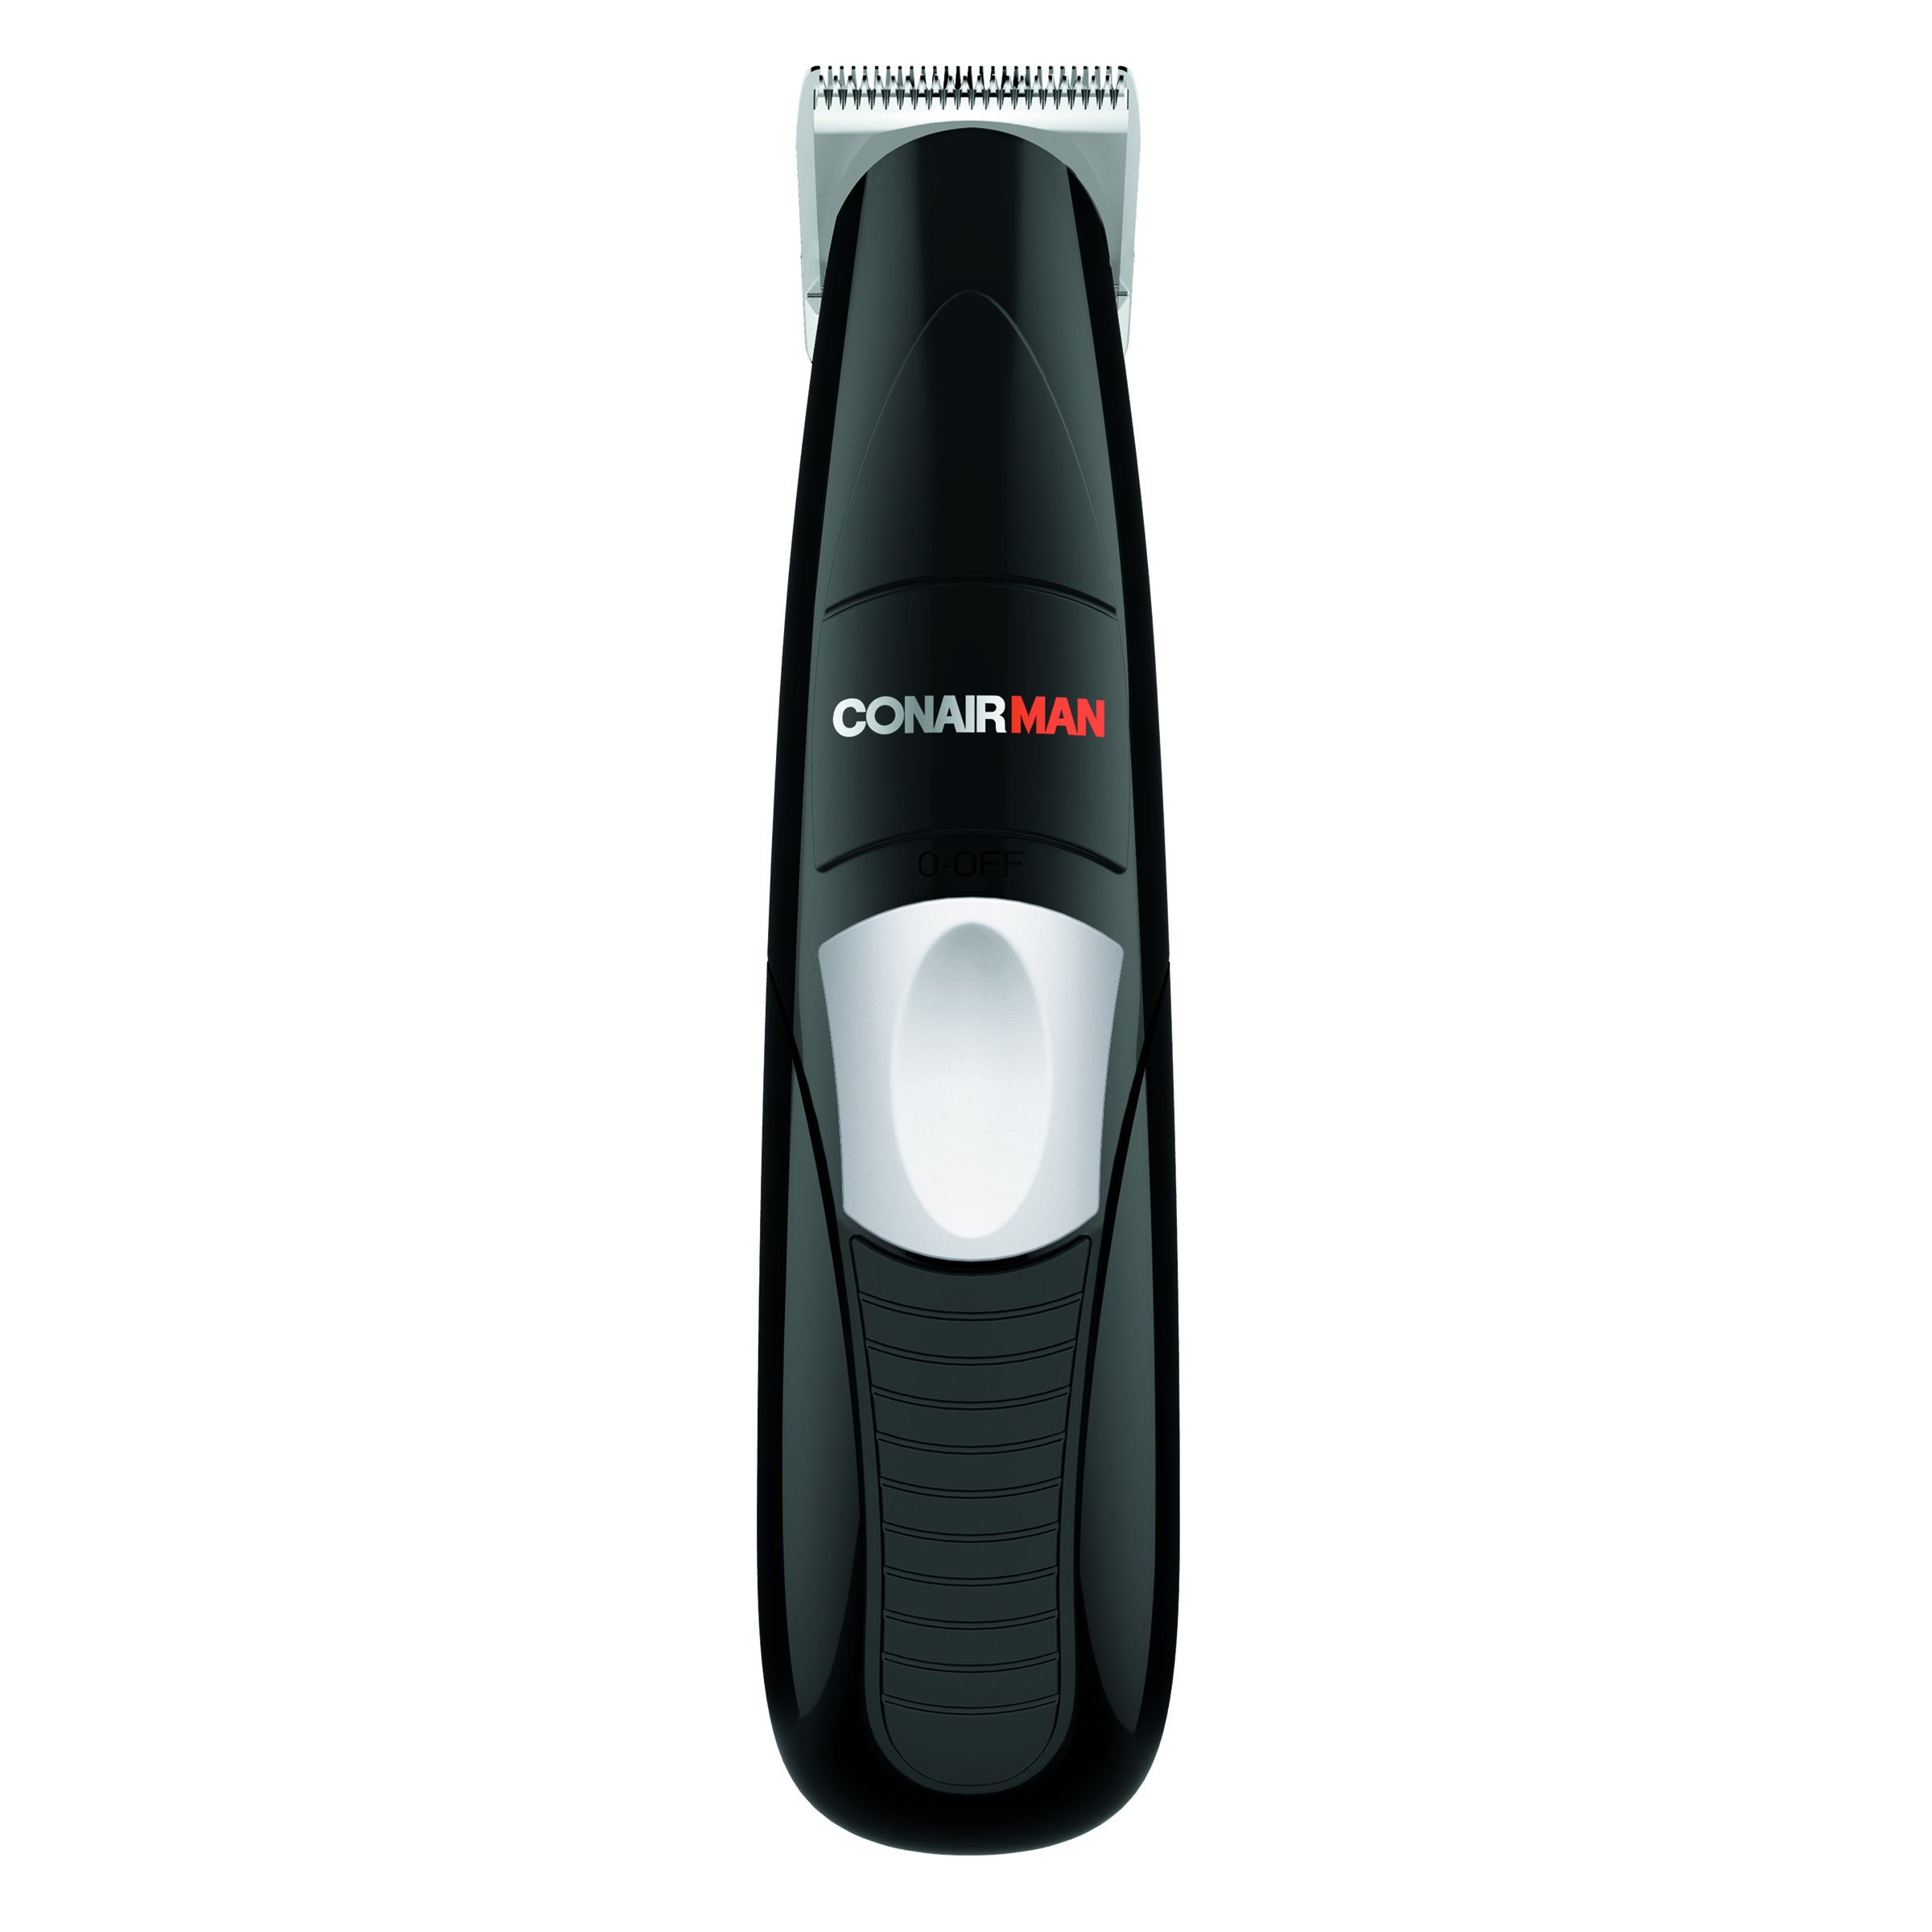 Conair Man All-in-One Beard & Mustache Trimmer; Battery Operated